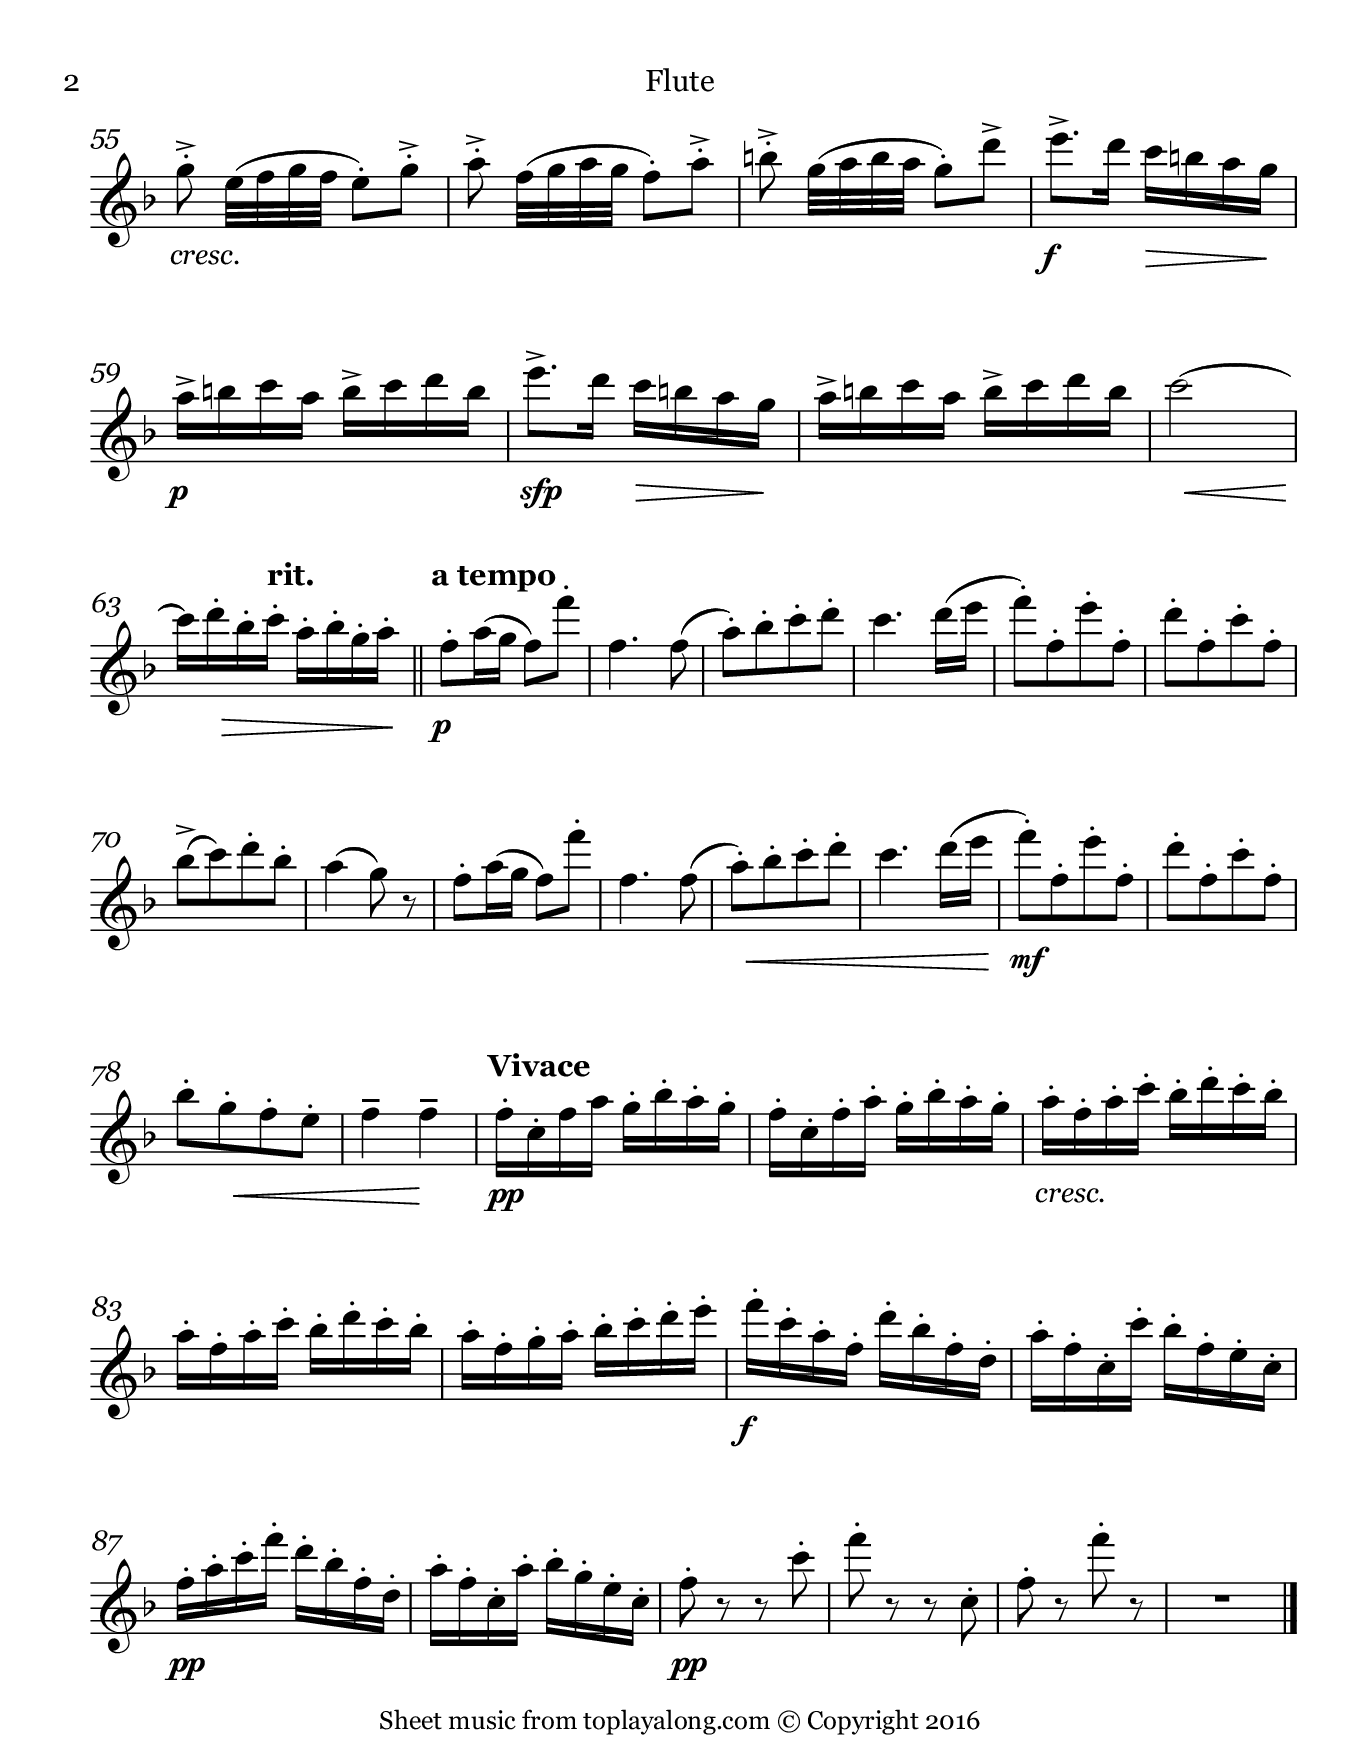 Tambourin by Gossec. Sheet music for Flute, page 2.